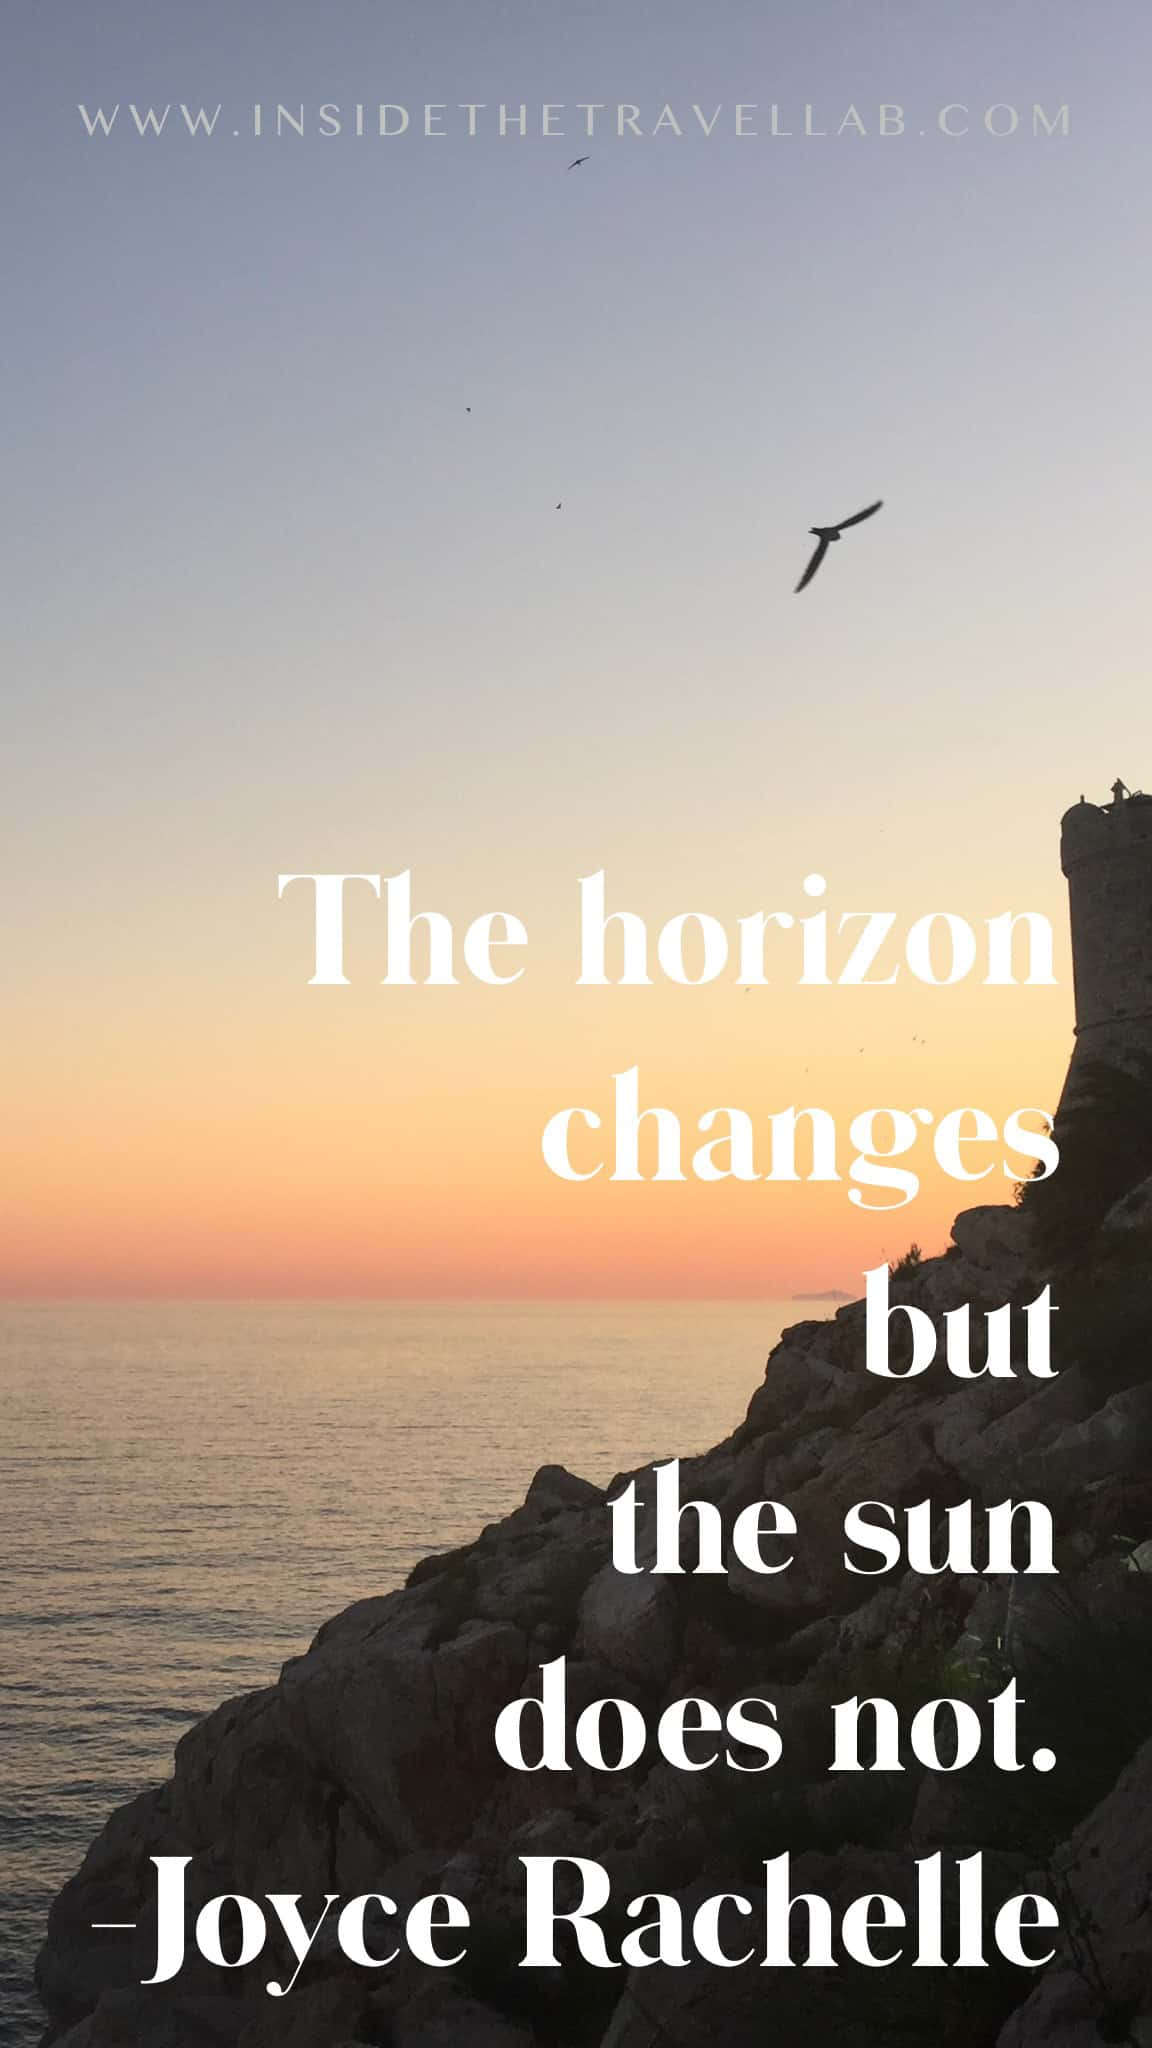 Sunset captions and sunset quotes - the horizon changes but the sun